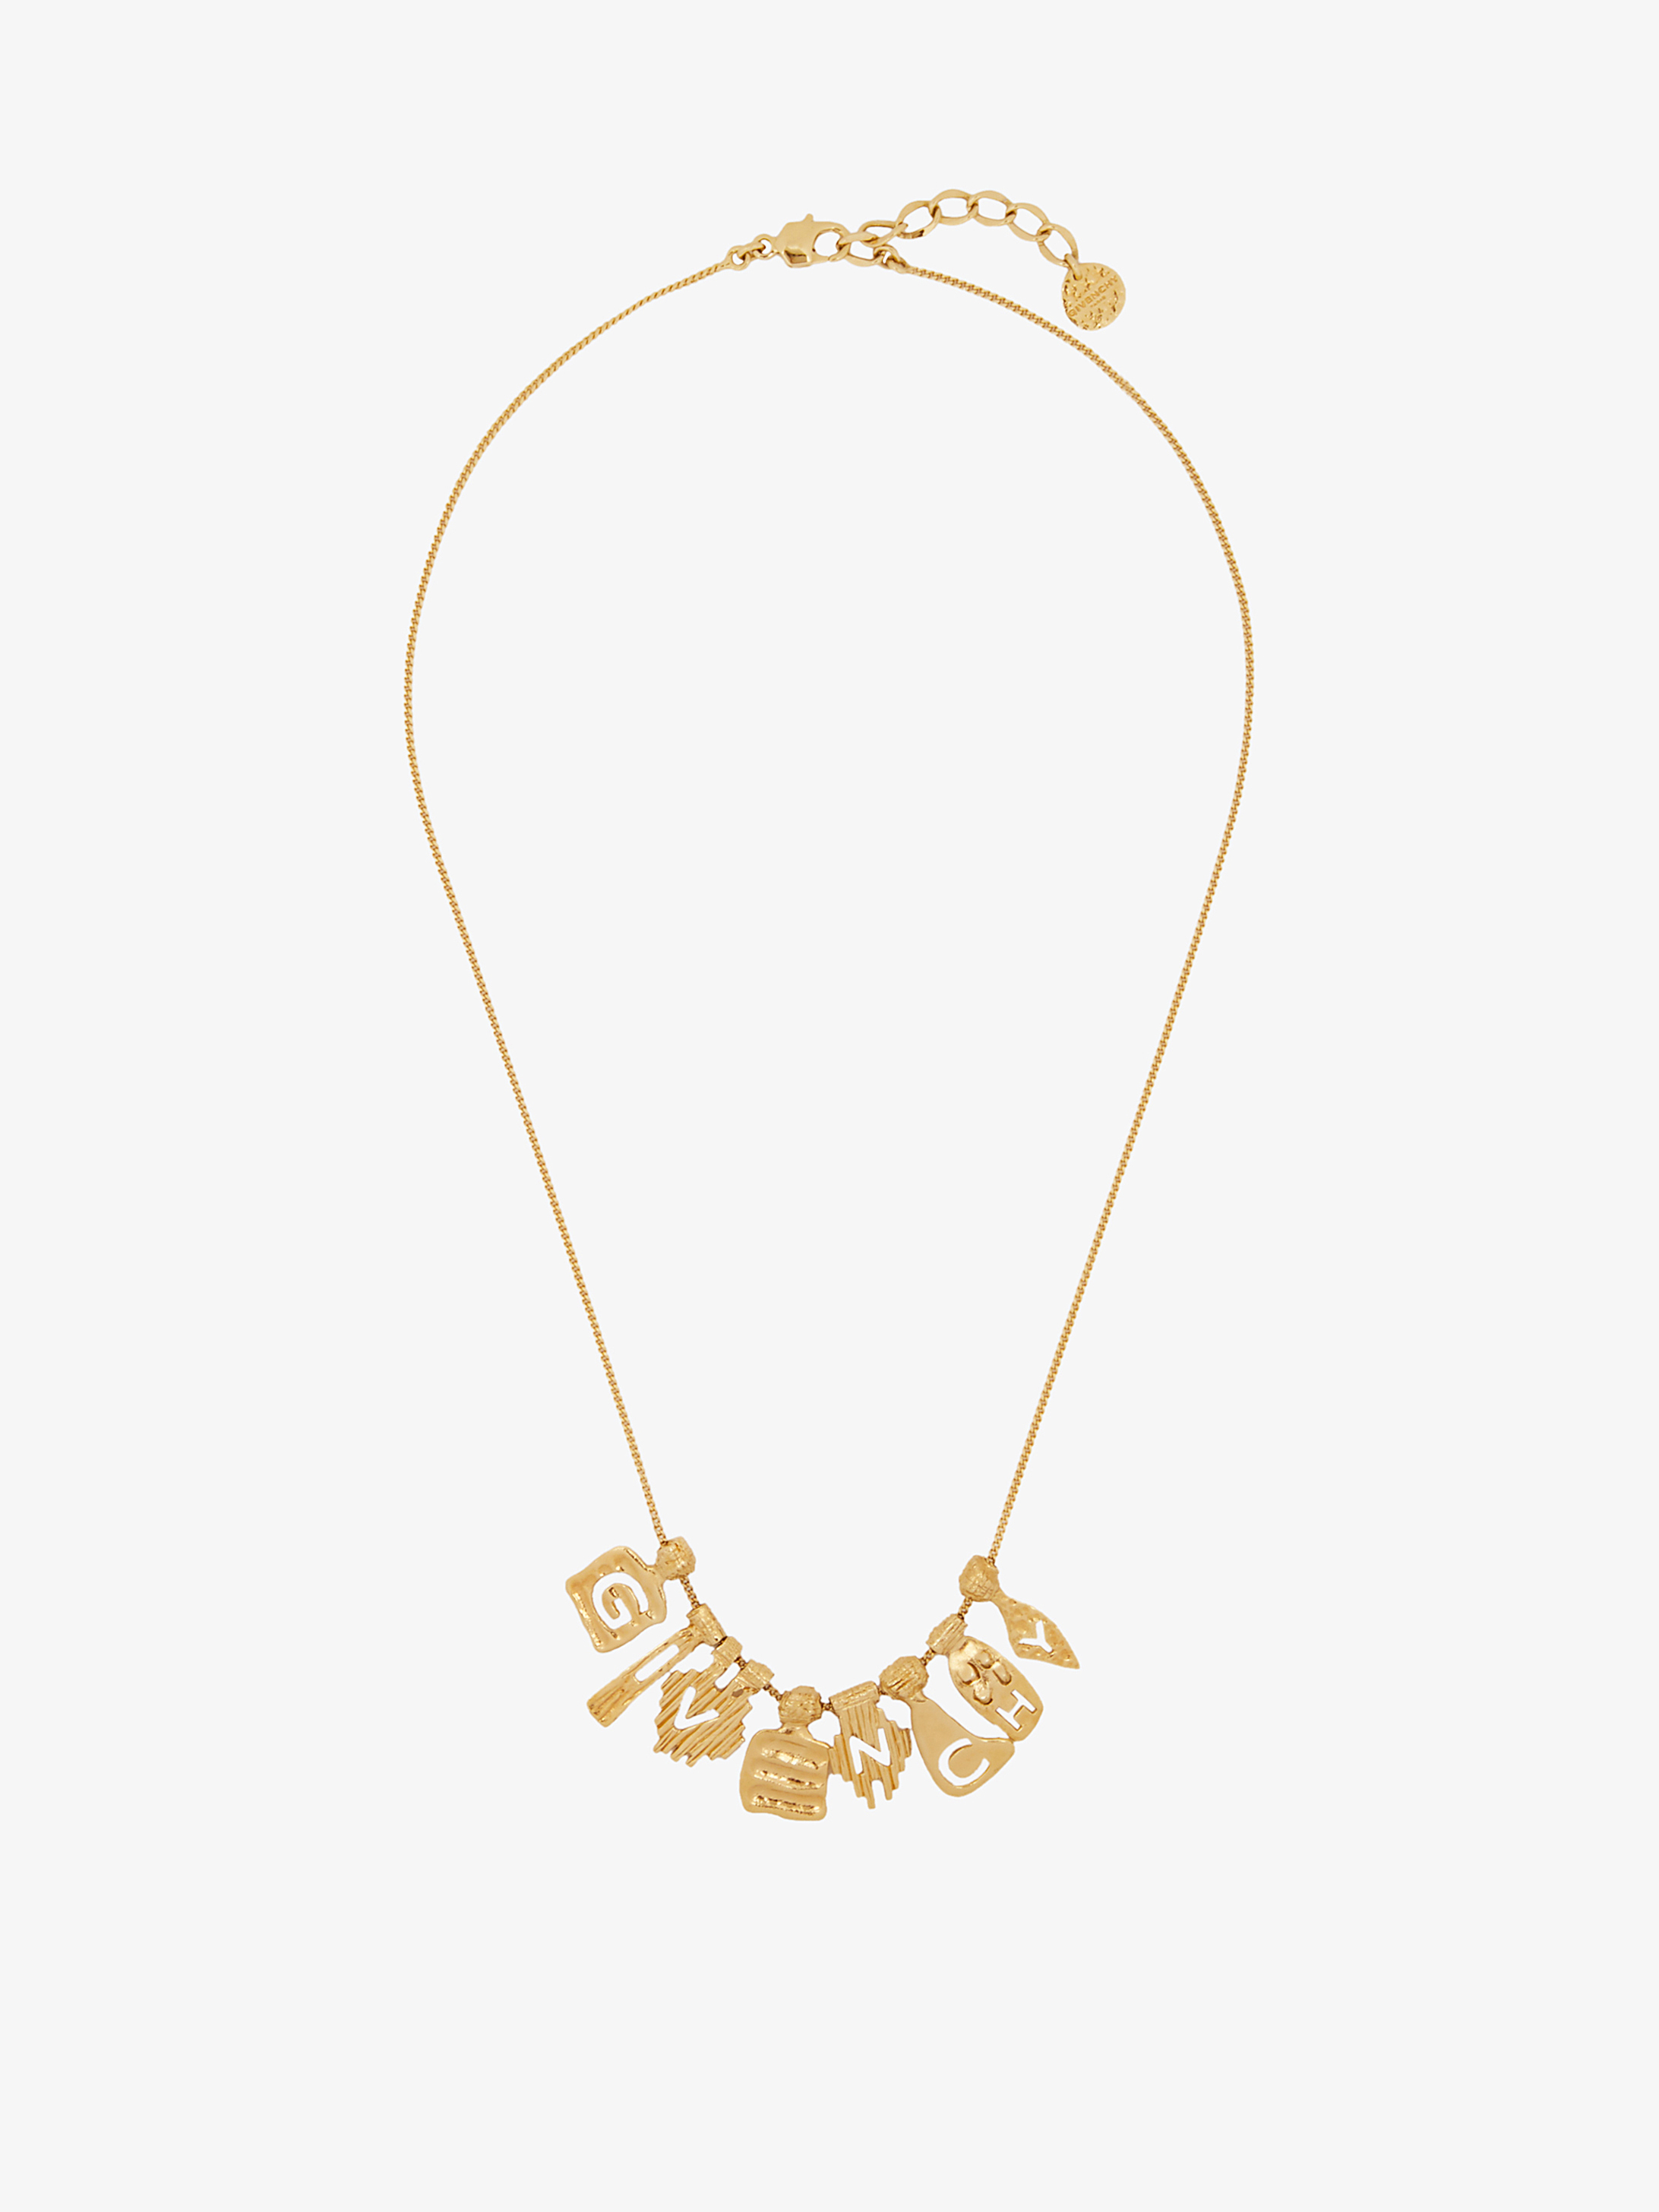 GIVENCHY Charming necklace